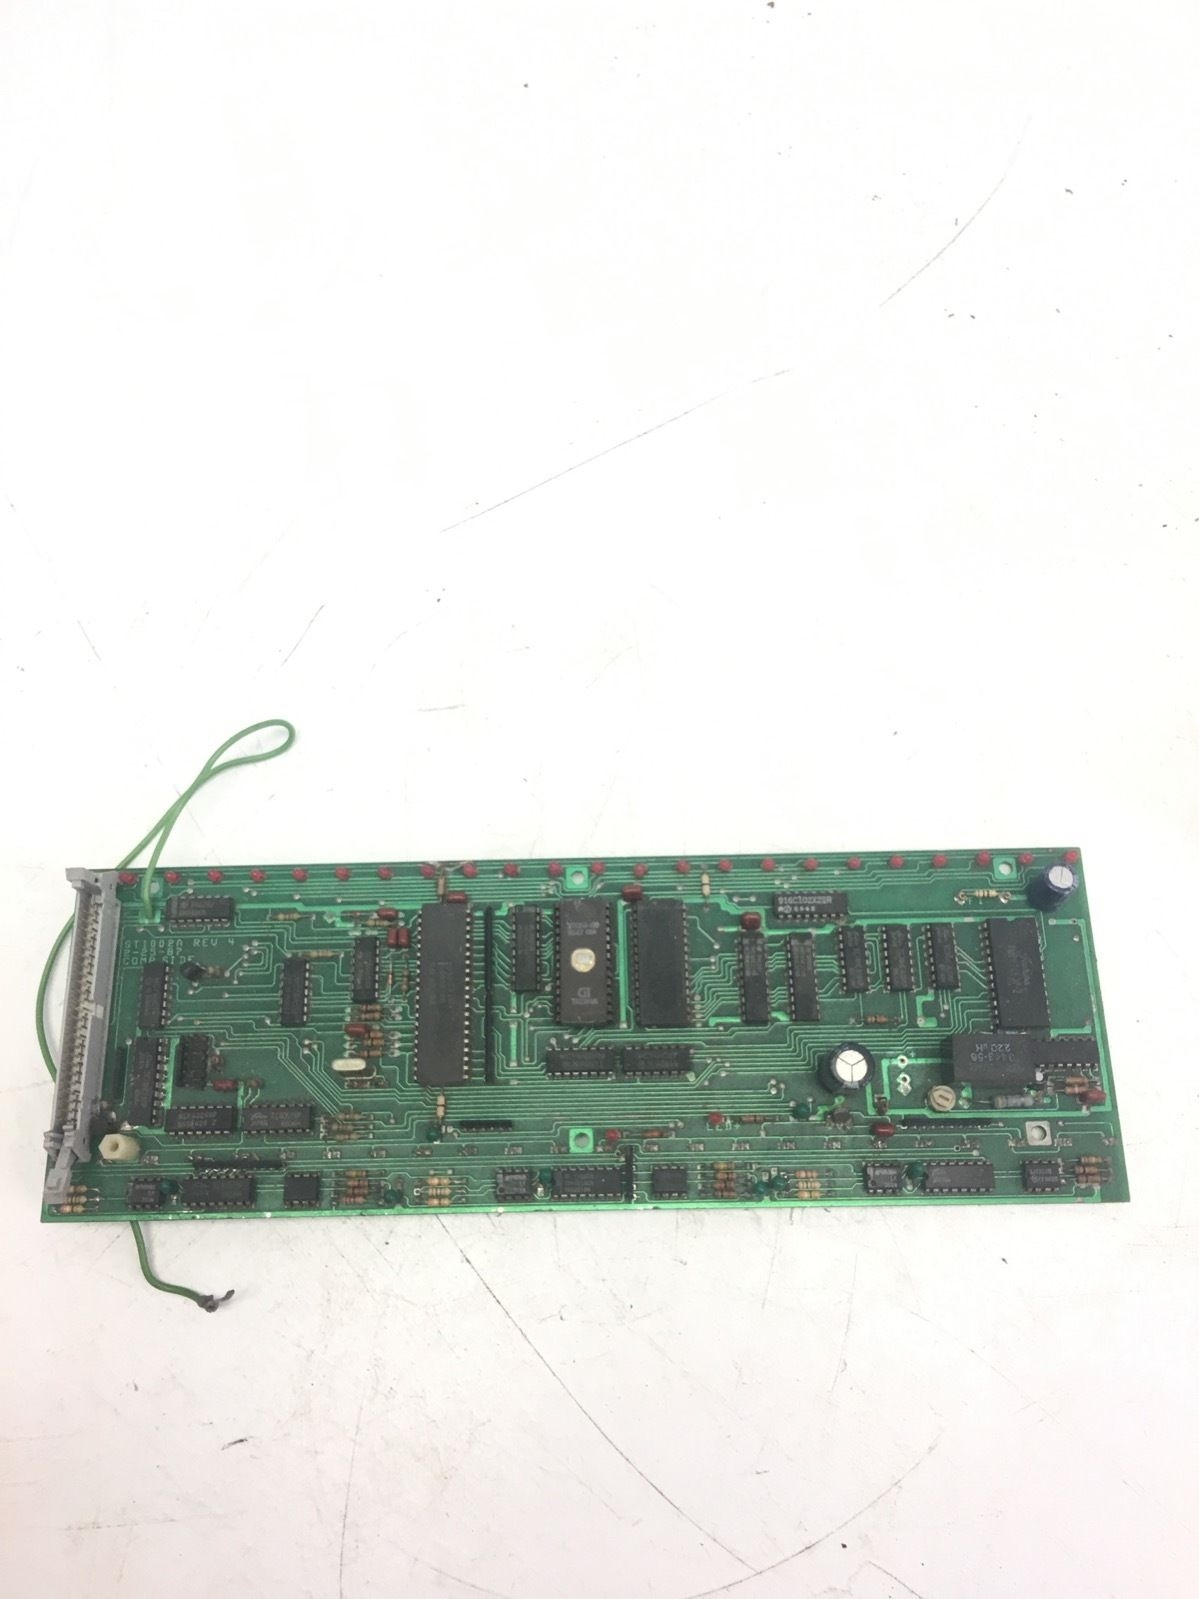 TEXAS INSTRUMENTSÂ ST1002A REVISION 4 COMPONENT CIRCUIT PC CARD BOARD, (B273) 1